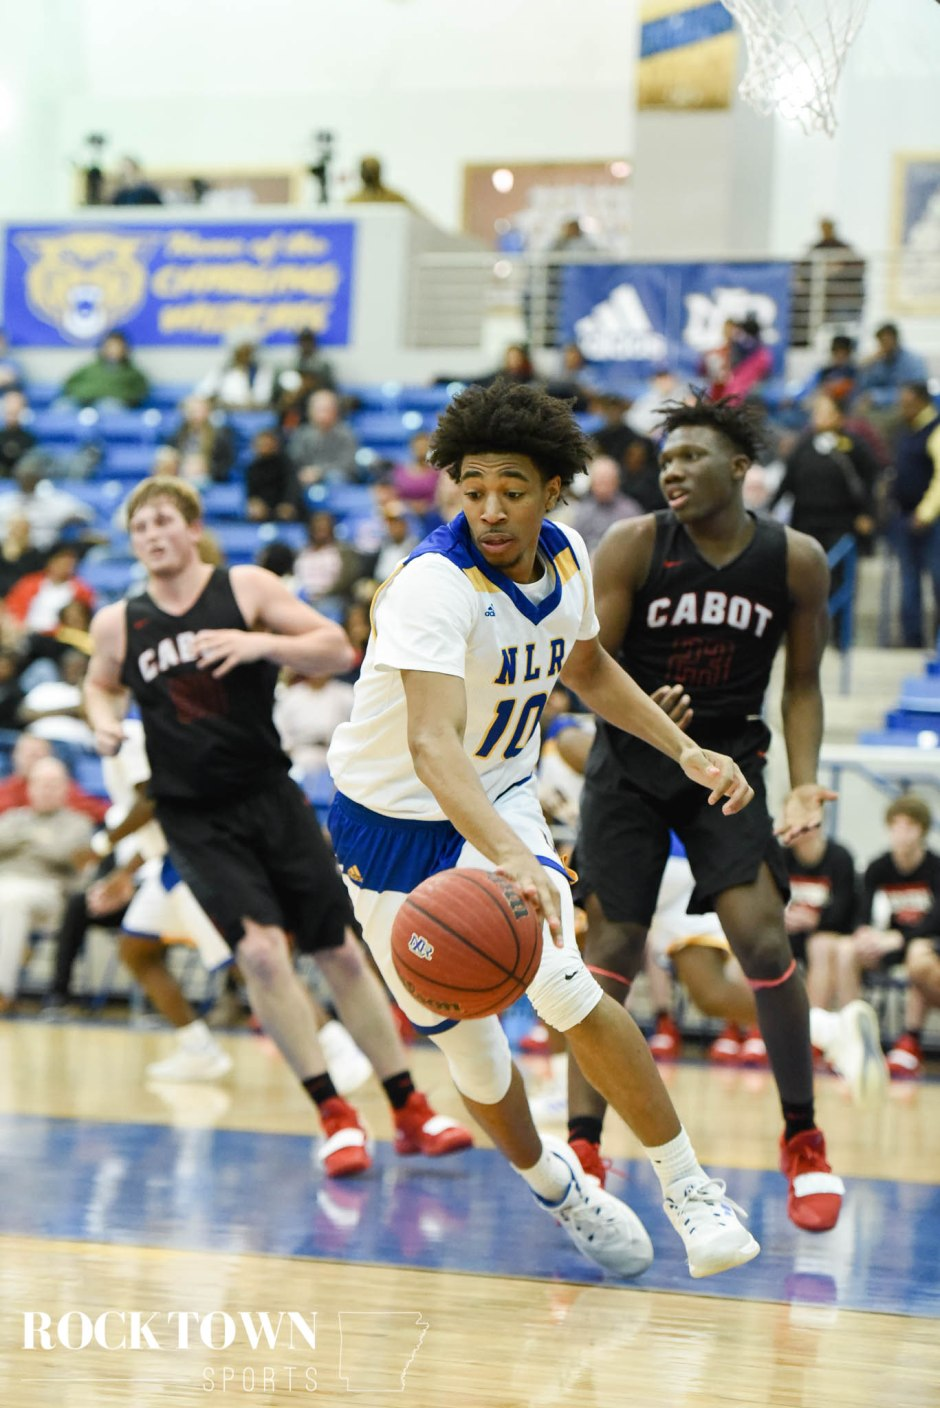 nlr_cabot_basketball_2019_(int)-129